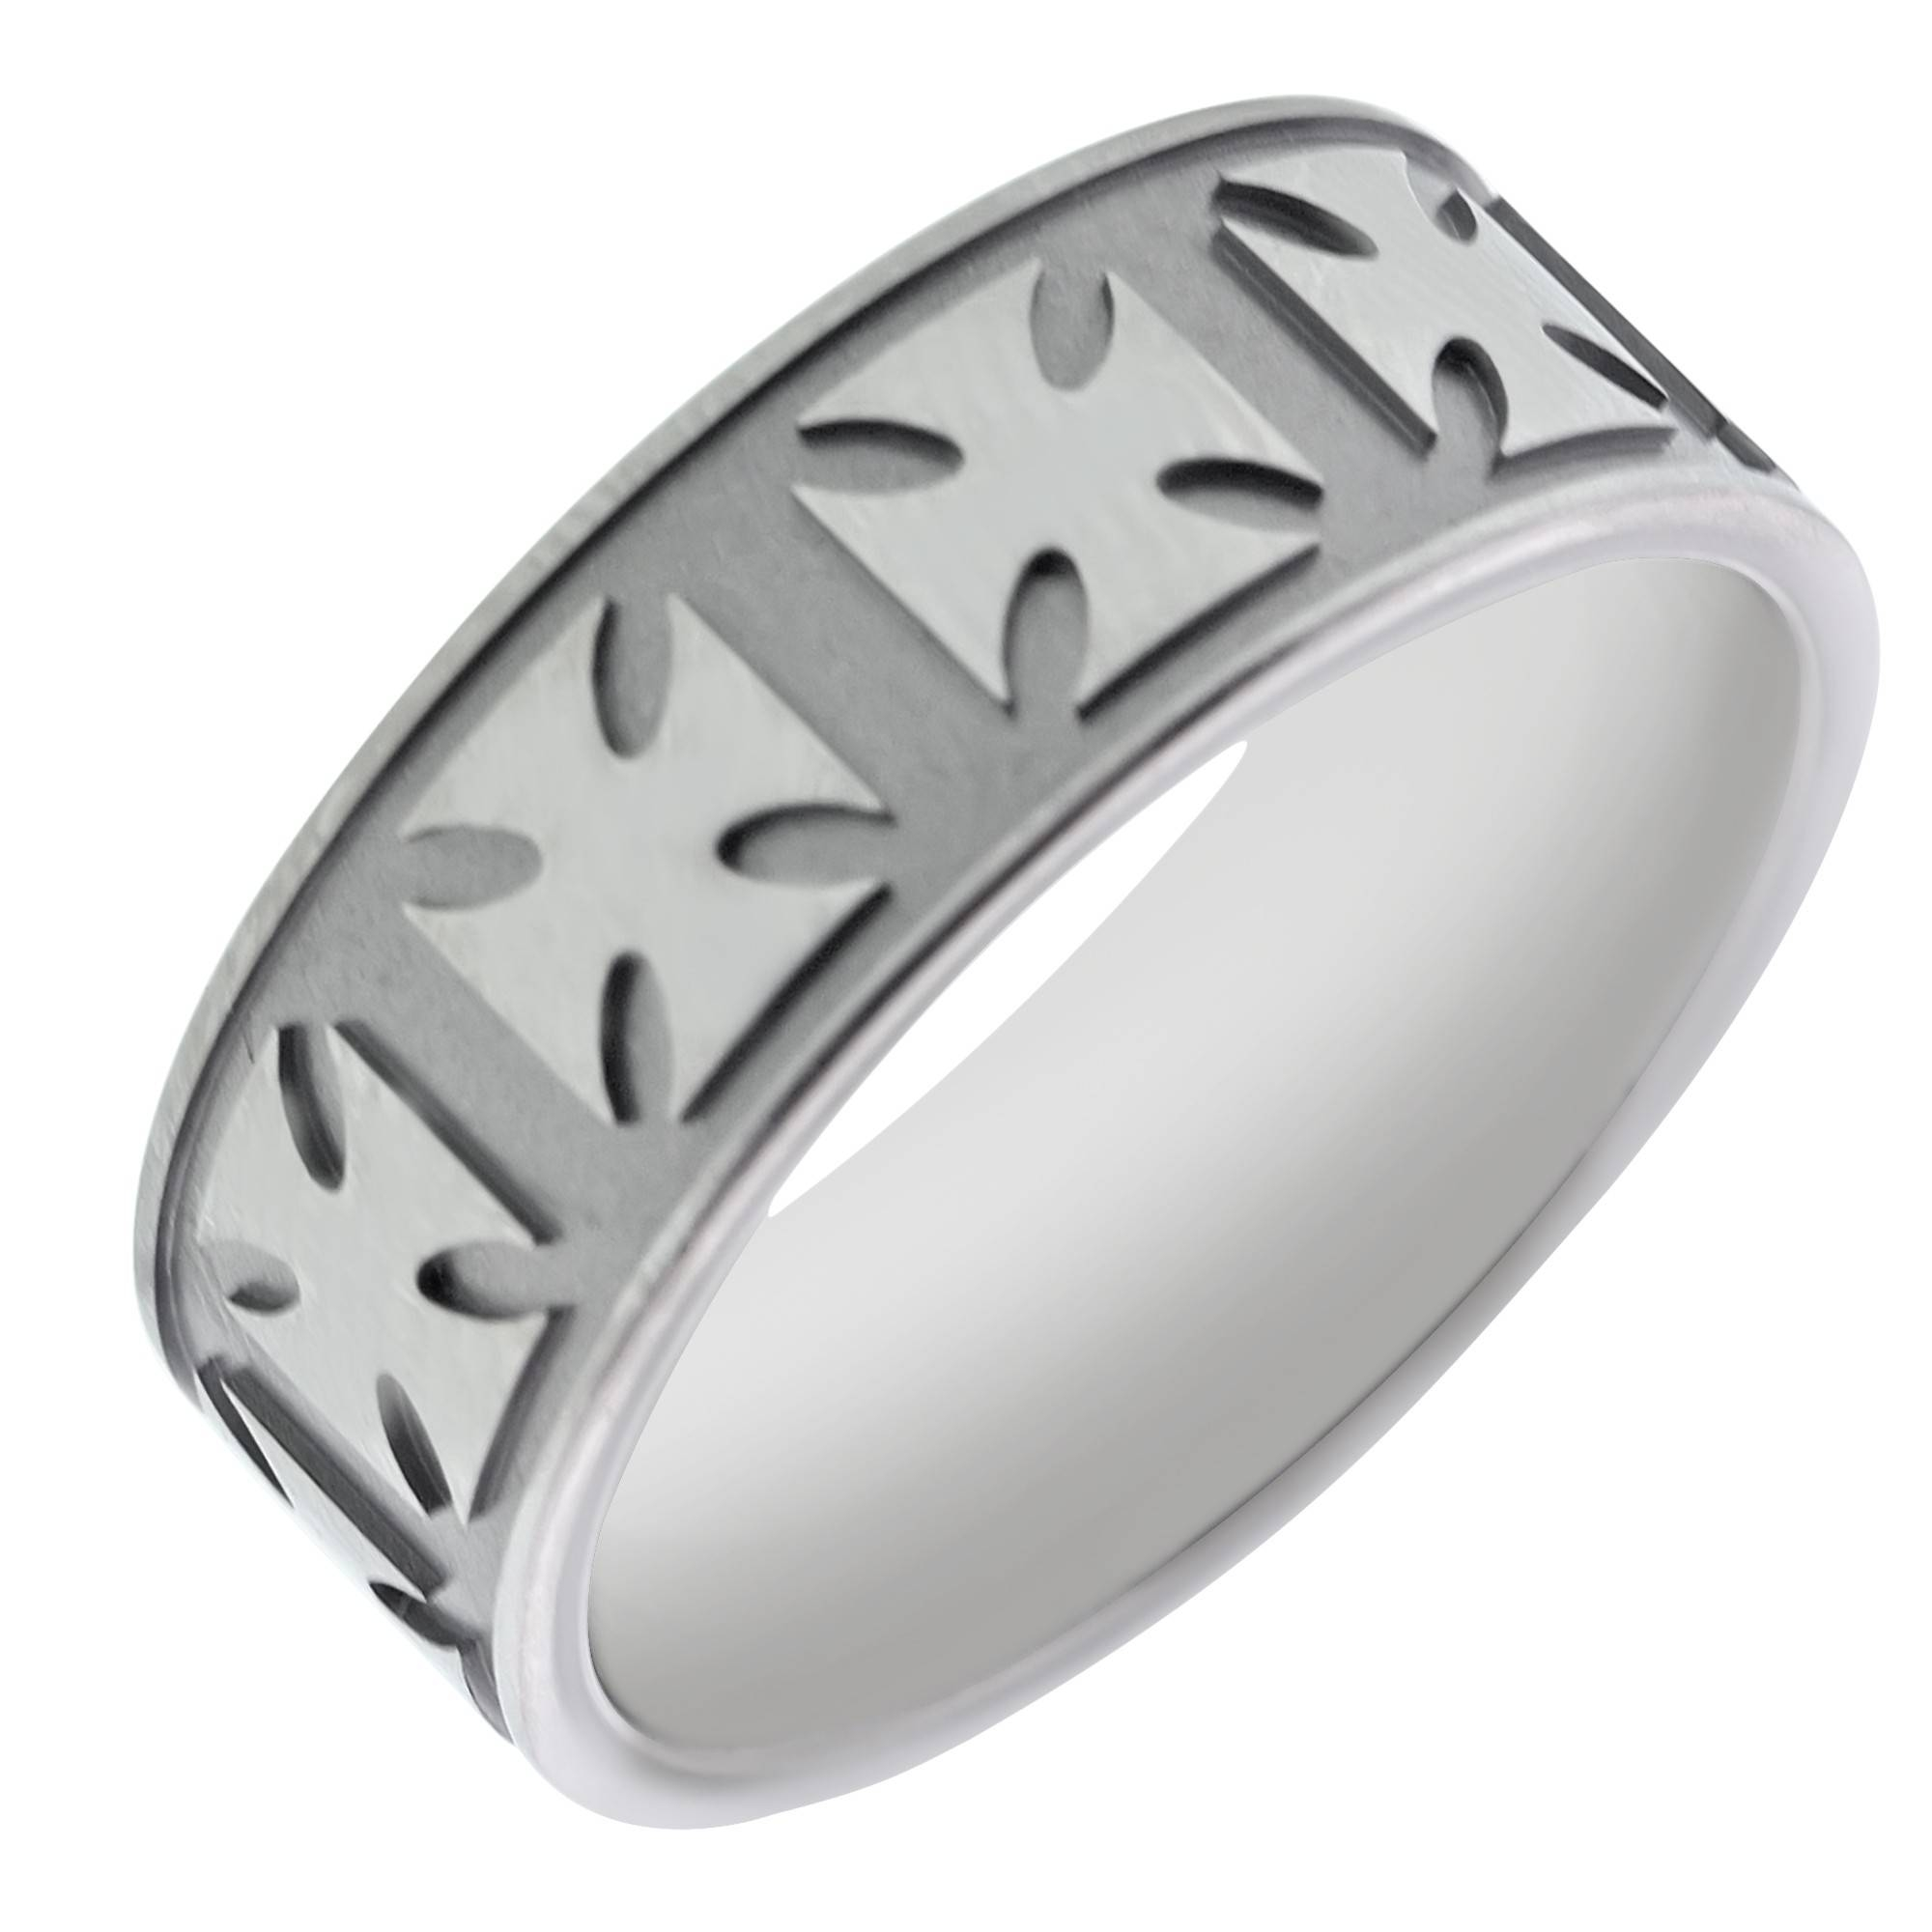 Mens Maltese Cross Wedding Band In Titanium (8mm) For Men's Wedding Bands With Cross (View 8 of 15)